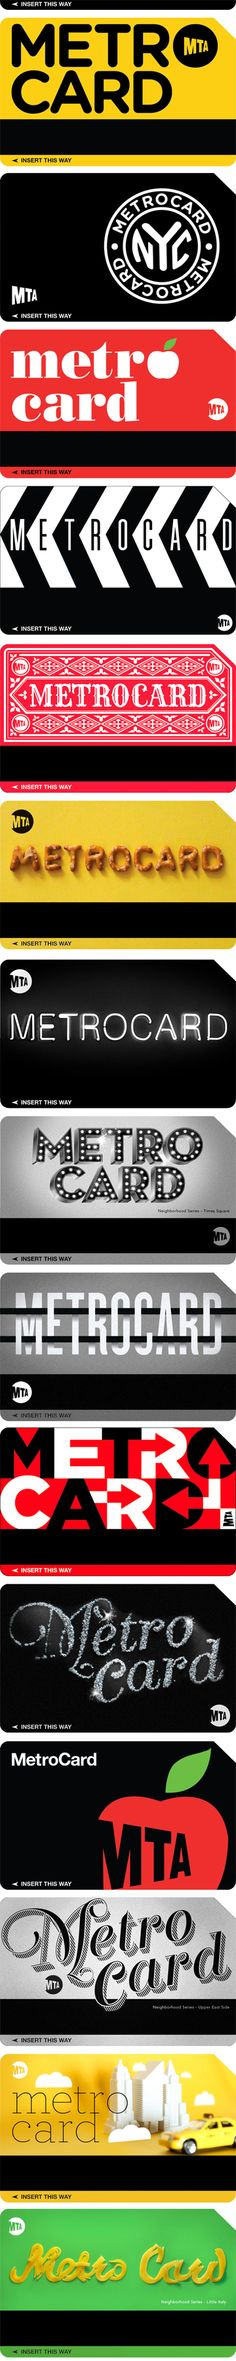 The Metrocard Project by Melanie Chernock